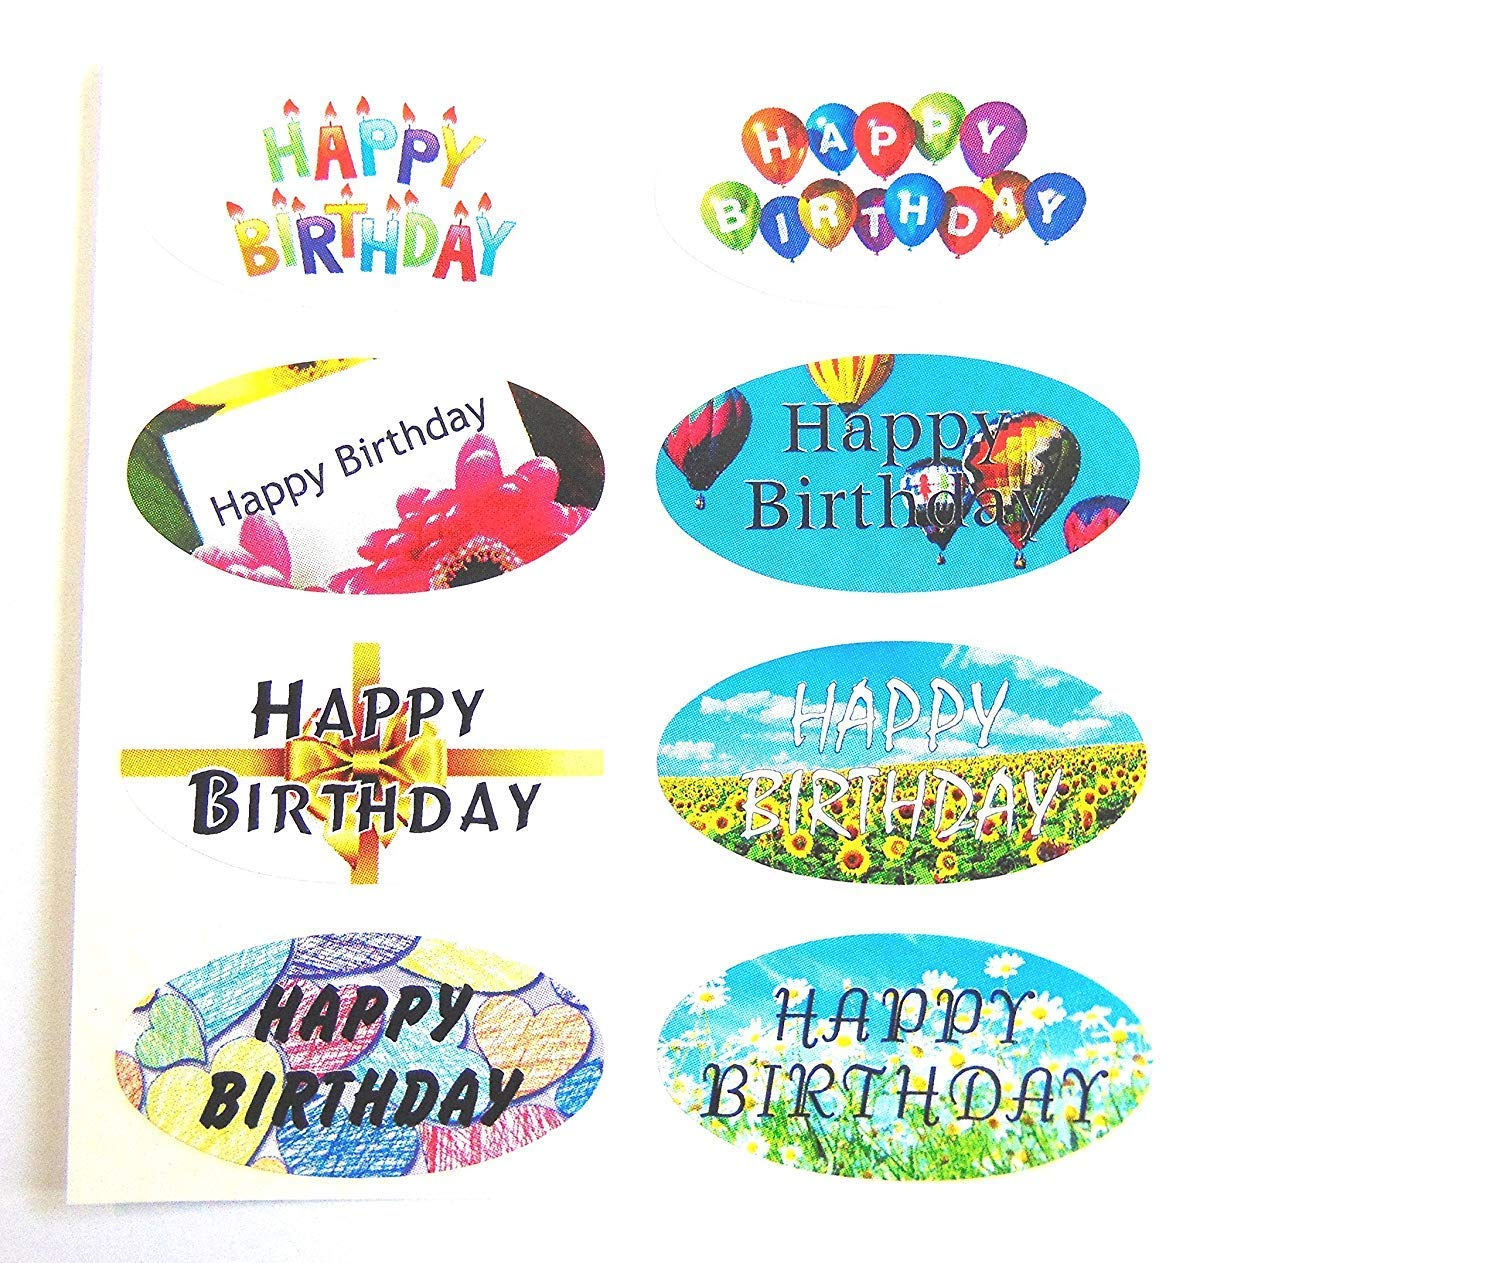 Amazon.com: Minilabel Mini Sticker Pack, 16 Feliz cumpleaños ...